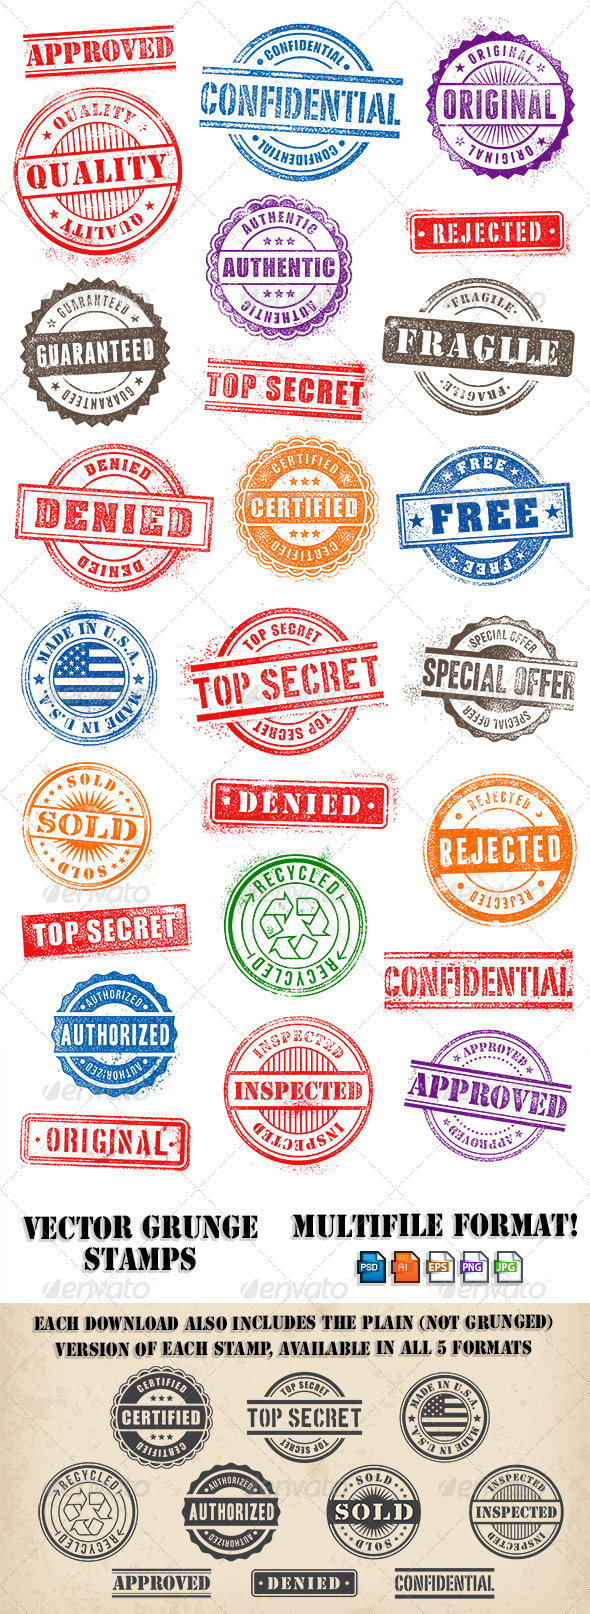 GraphicRiver Grunge Commercial and Promotional Stamps Set 6437076